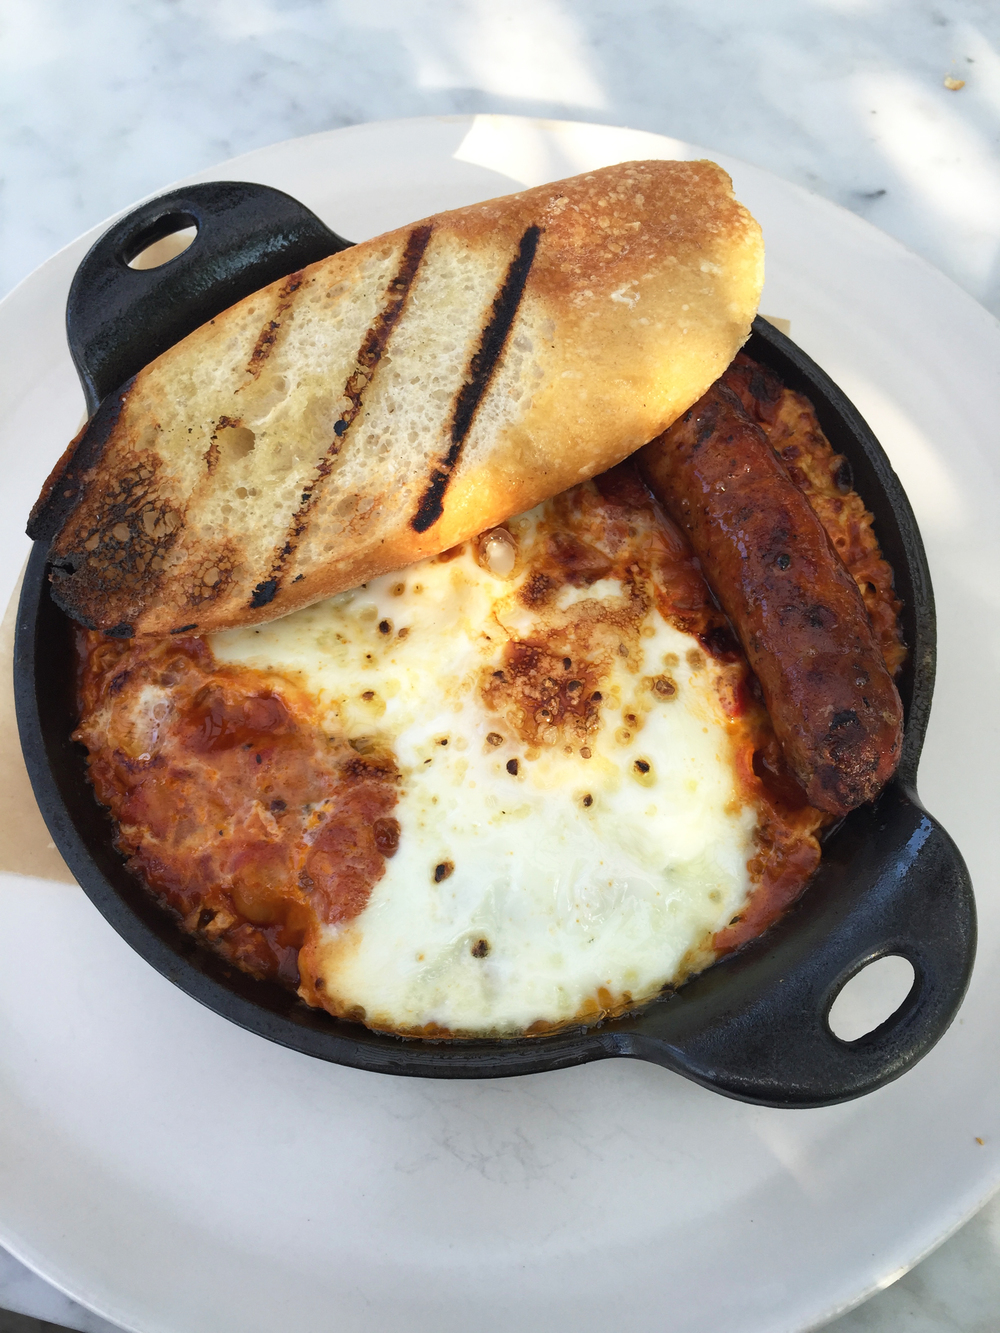 Moroccan Baked Eggs with mergeuz sausage, cage-free farm eggs, tomatoes, chickpeas, peppers, and grilled bread.